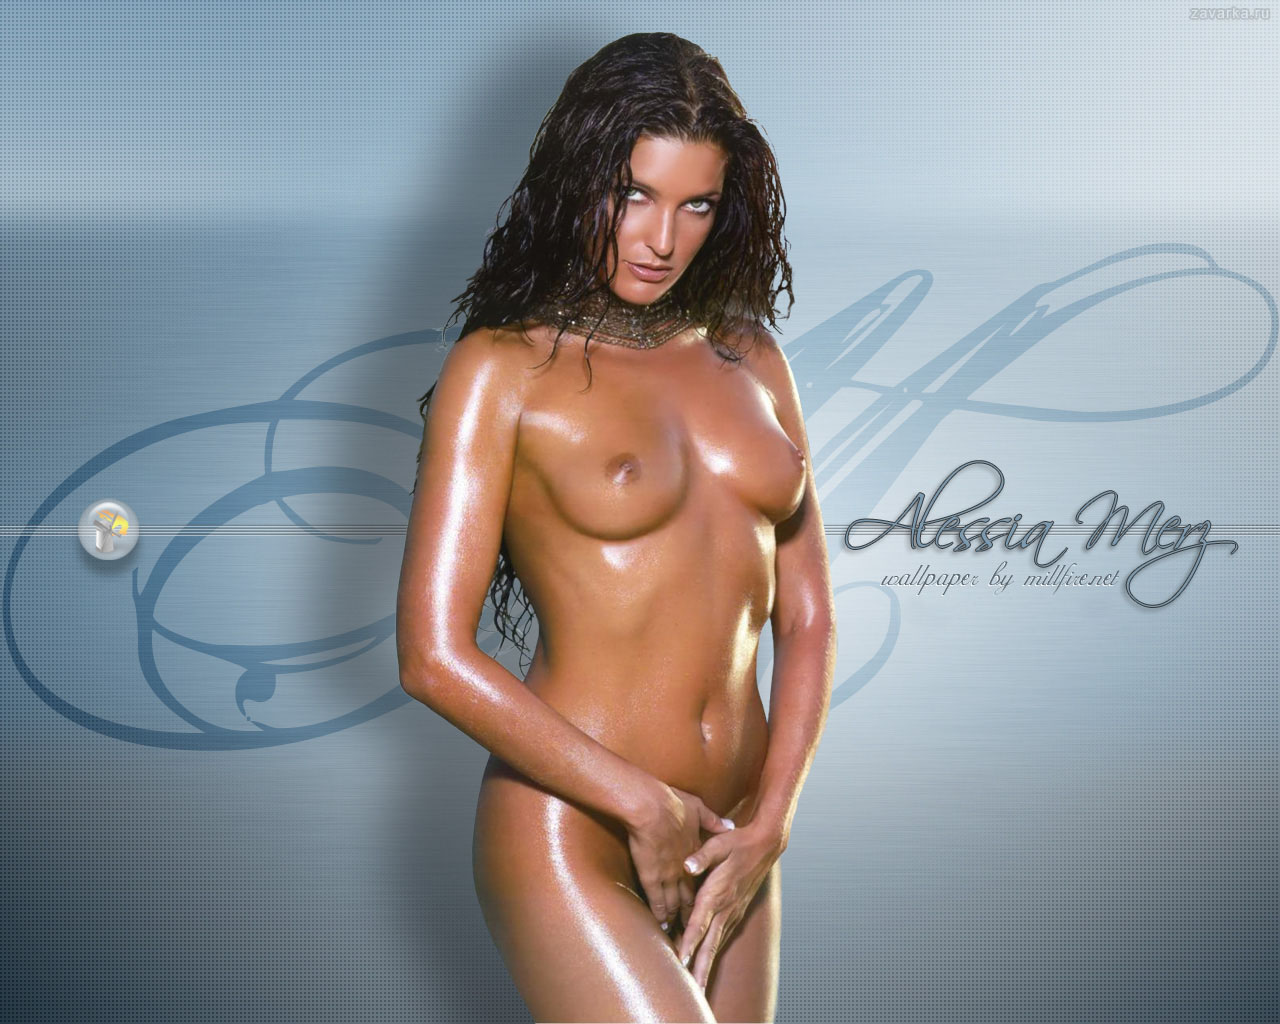 videos-alessia-merz-naked-nude-black